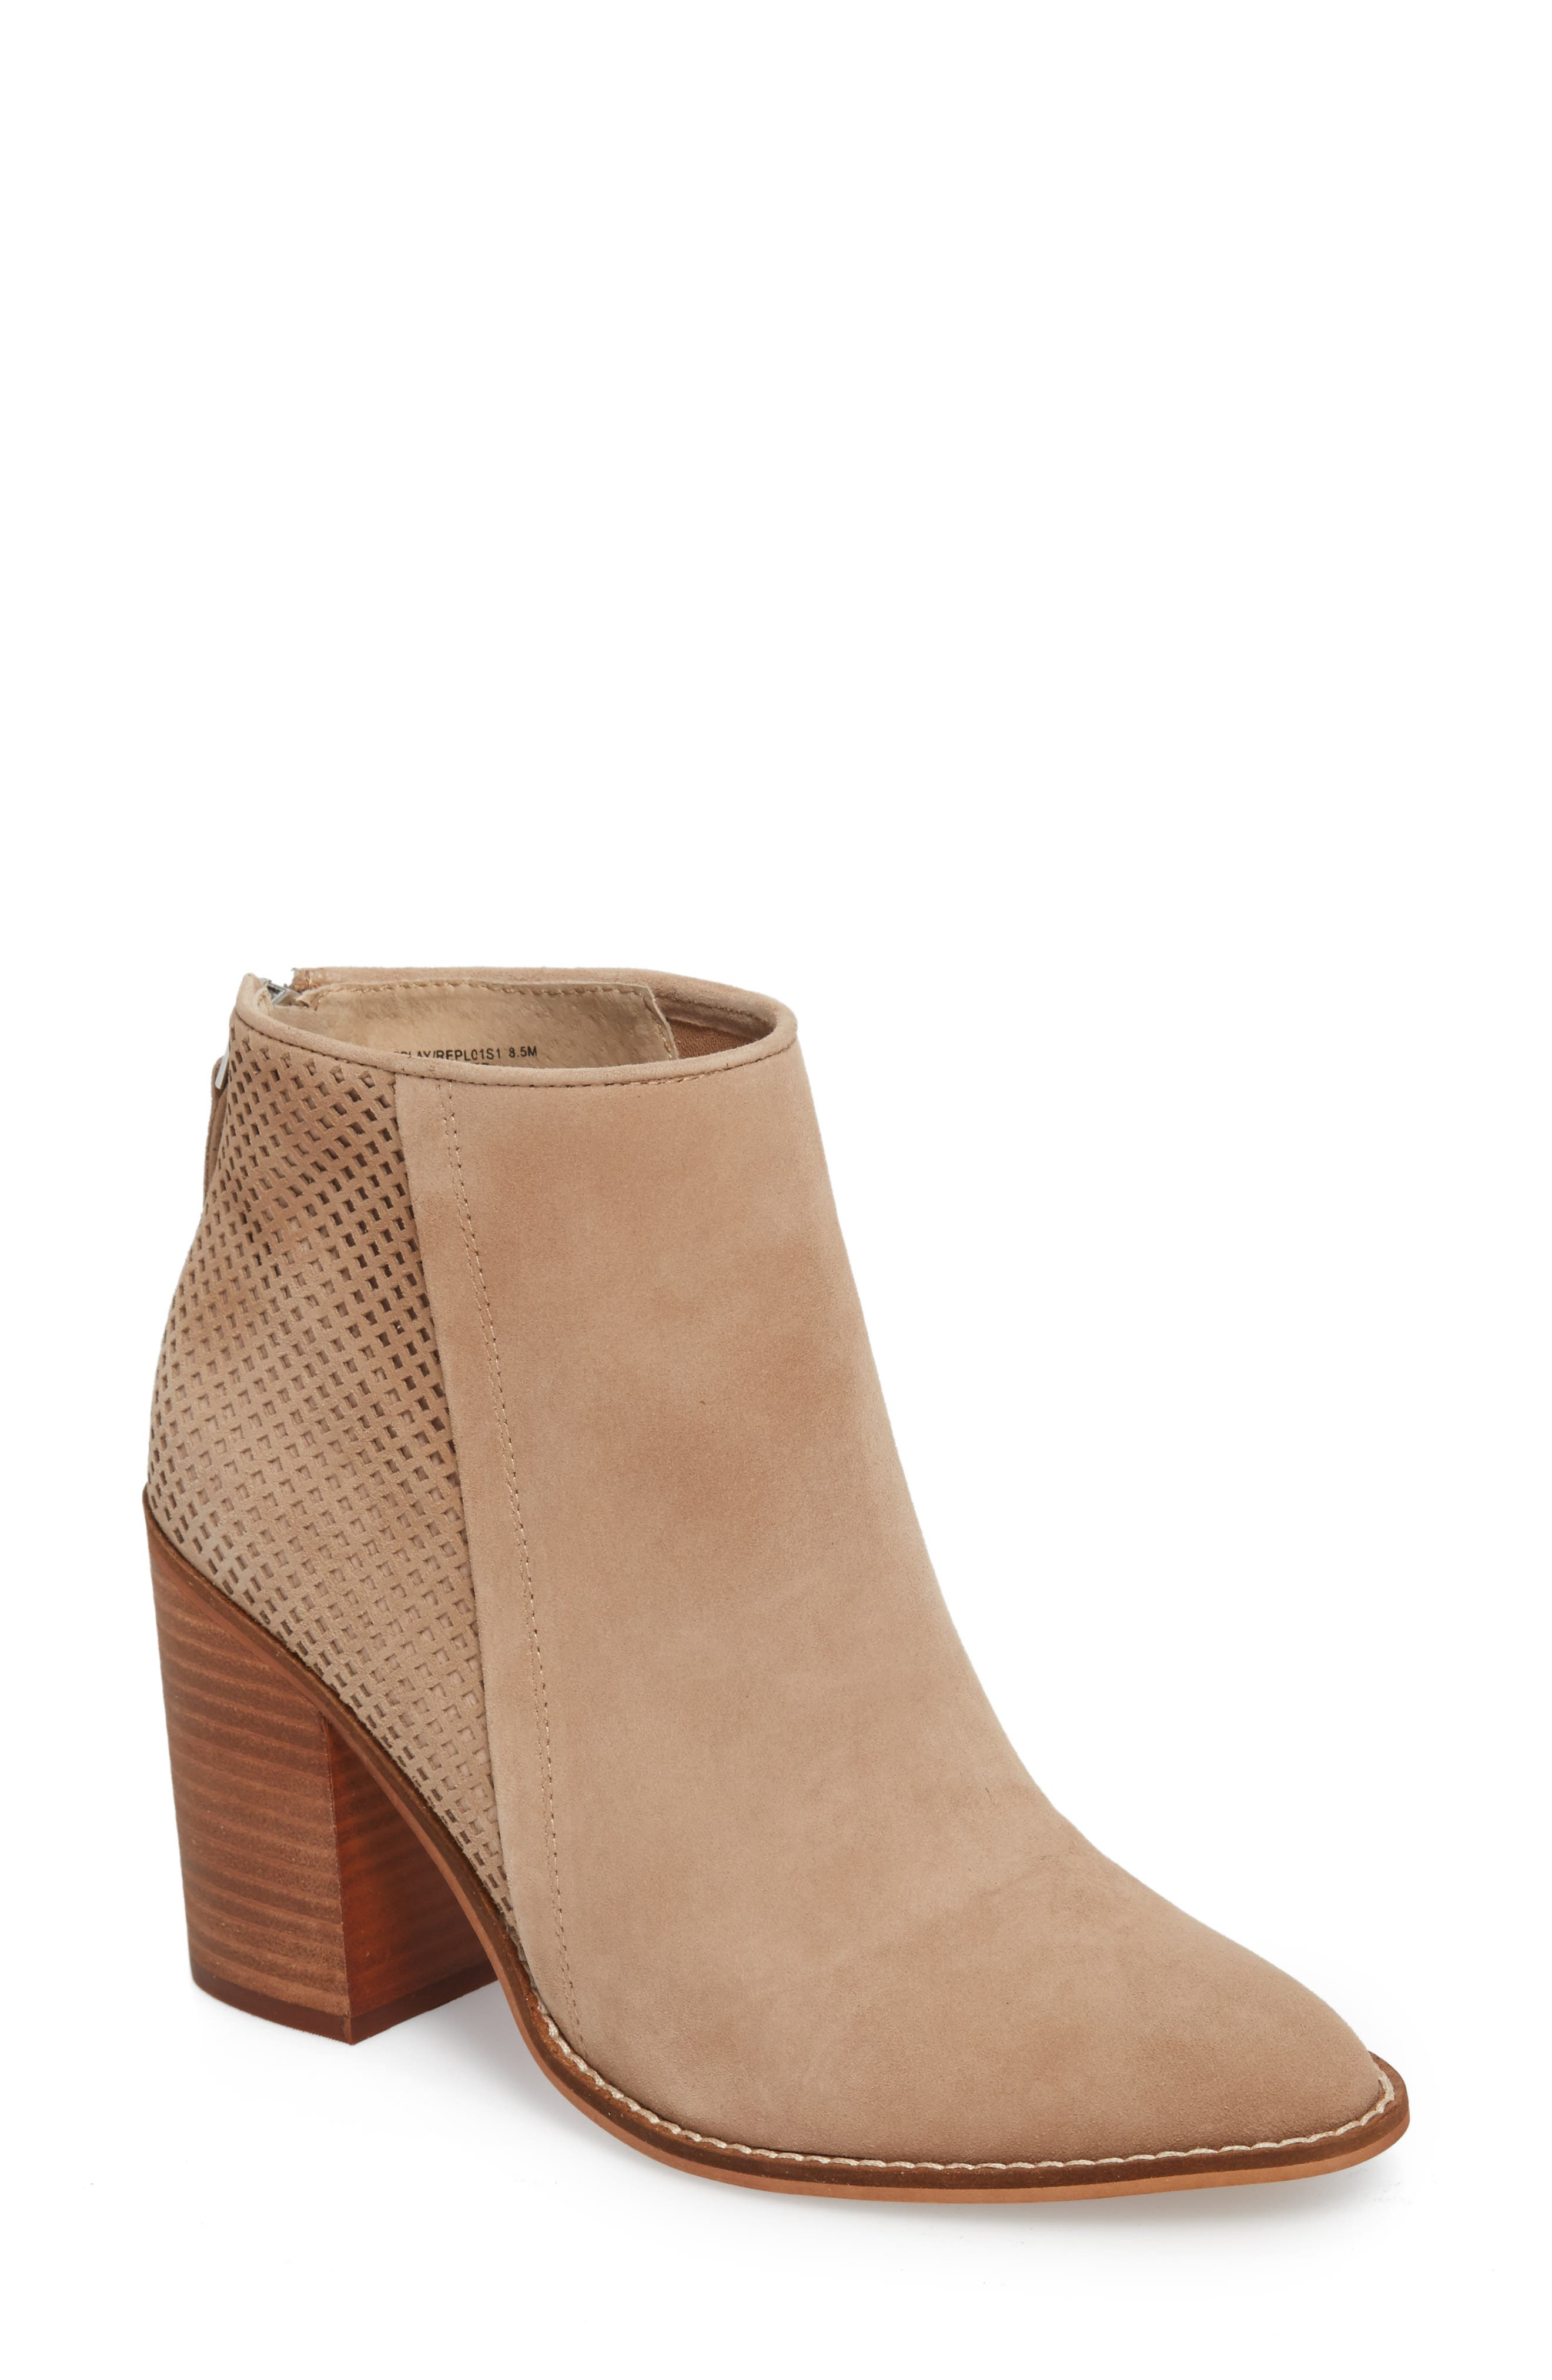 Boots for Women, Booties On Sale in Outlet, Caramel, Suede leather, 2017, 5.5 6 7.5 Car Shoe